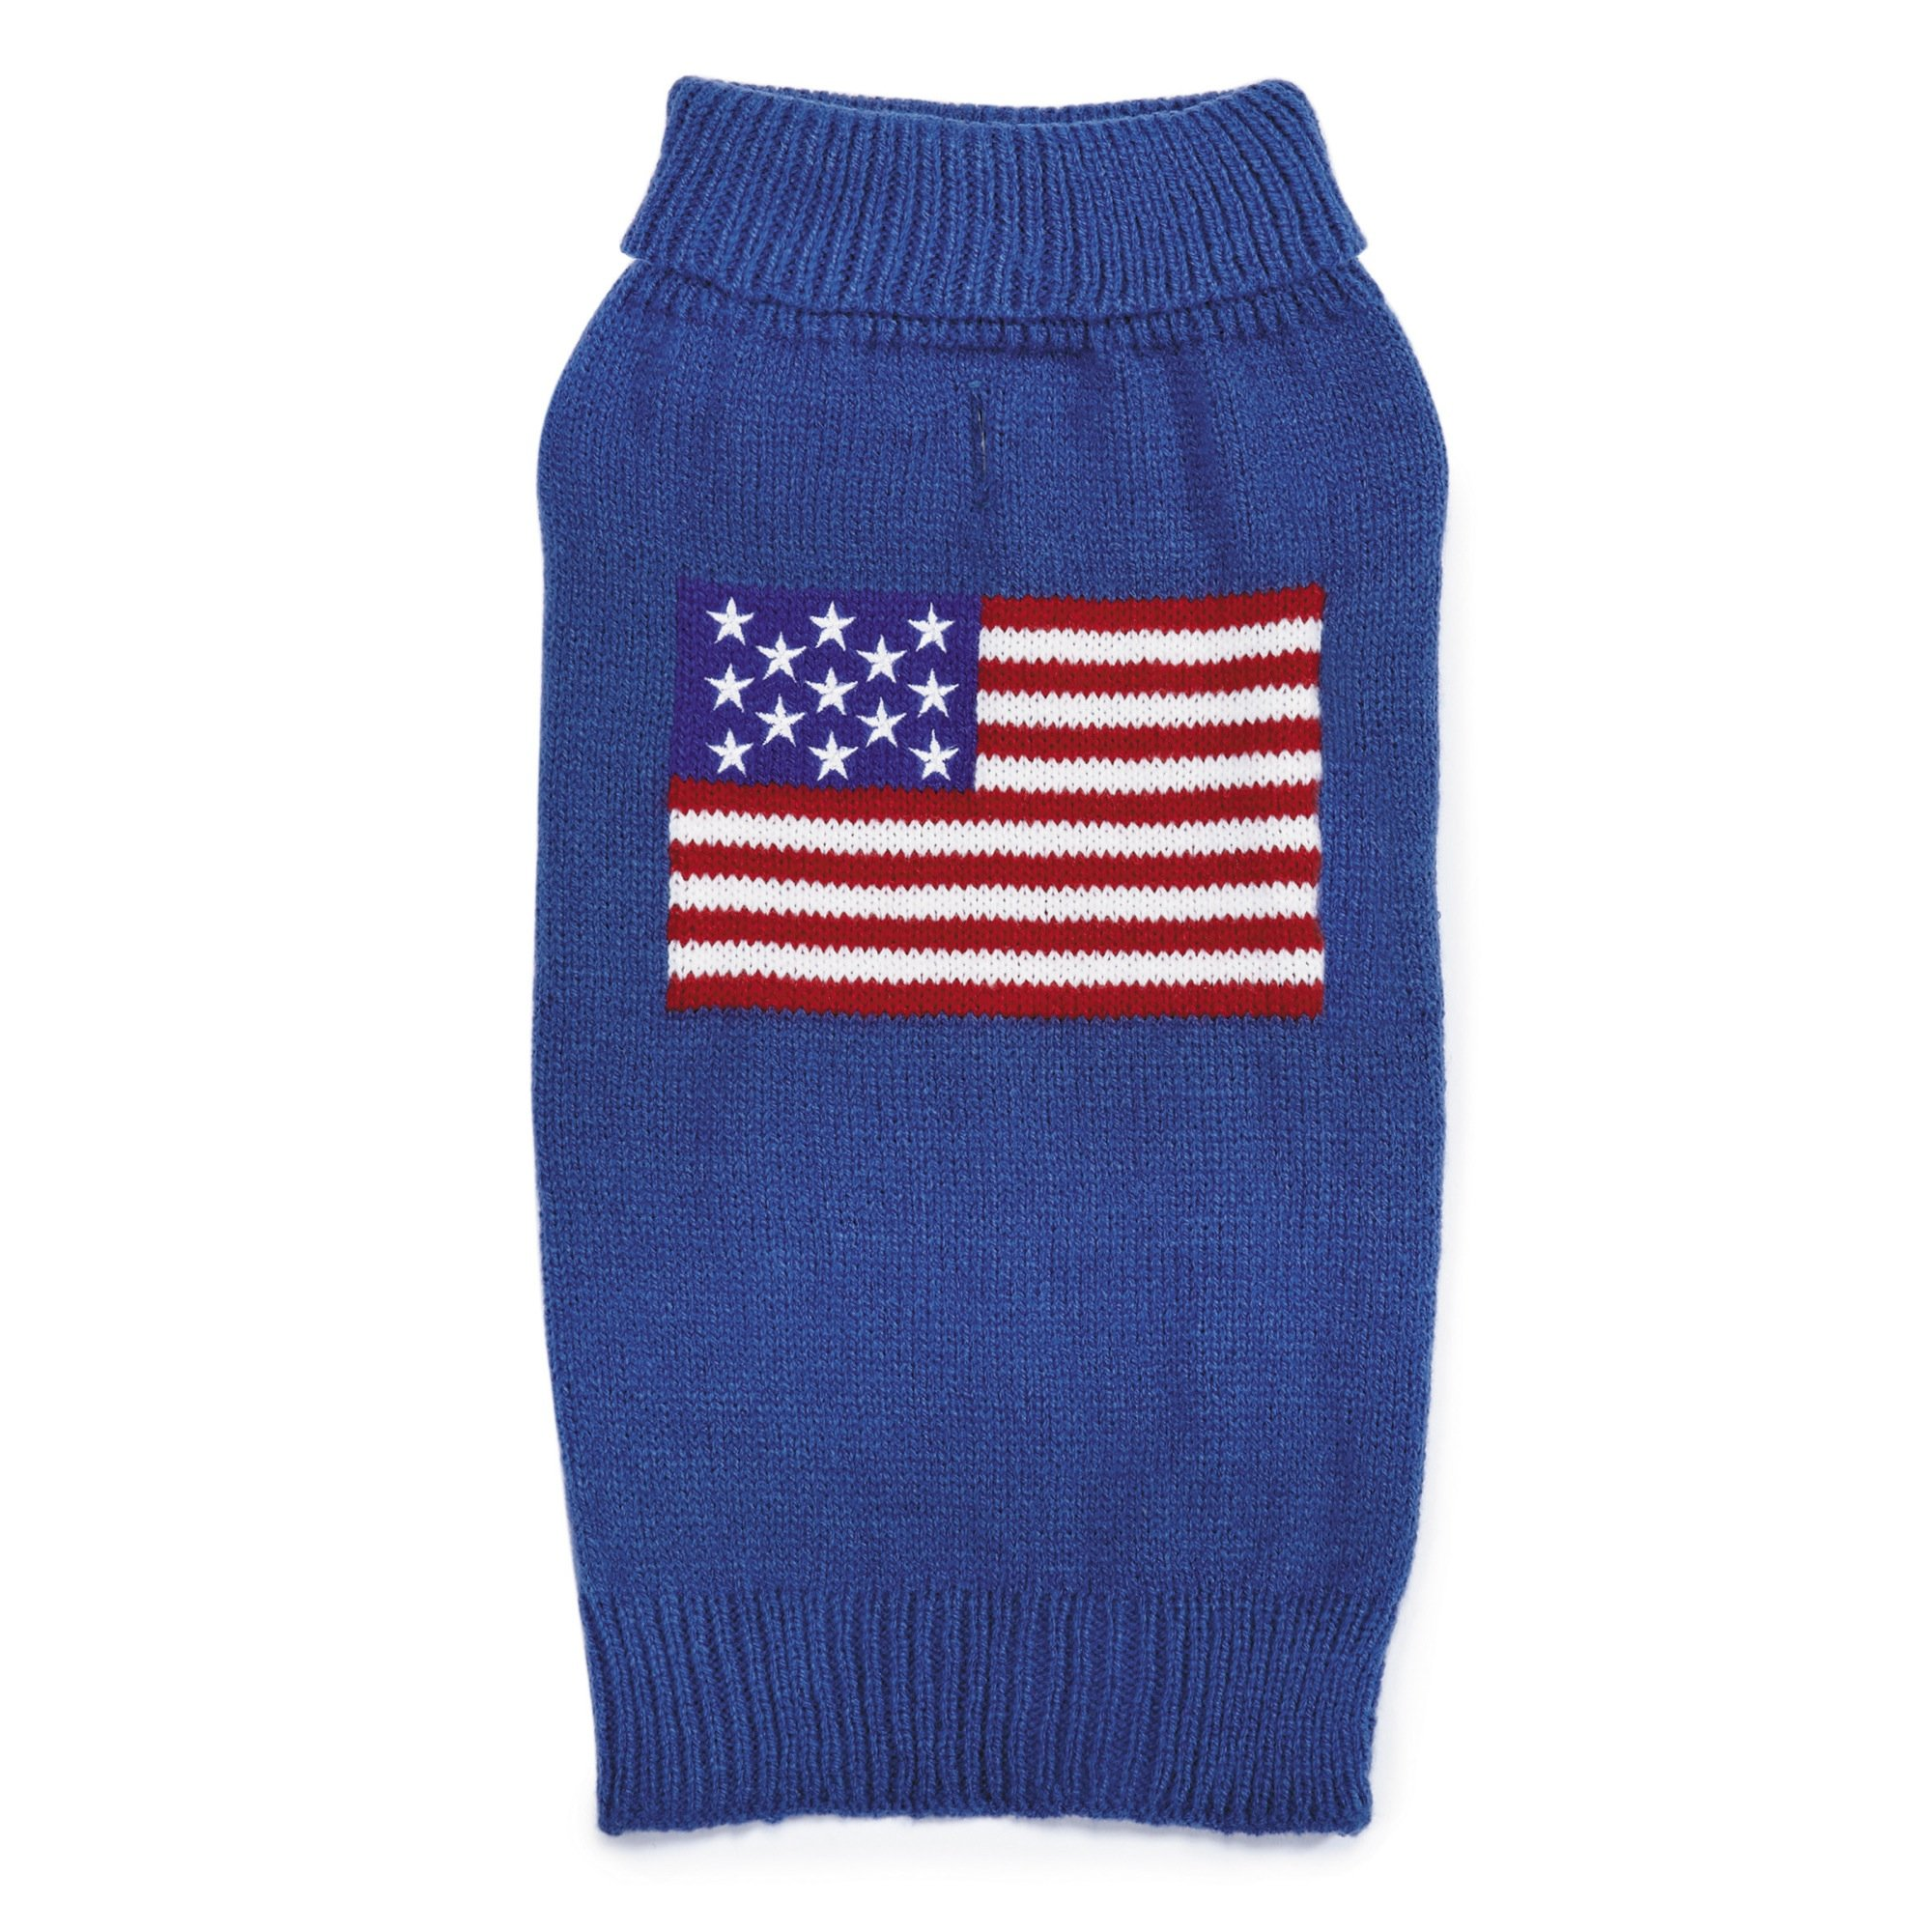 Zack & Zoey Elements American Flag Sweater for Dogs, Small